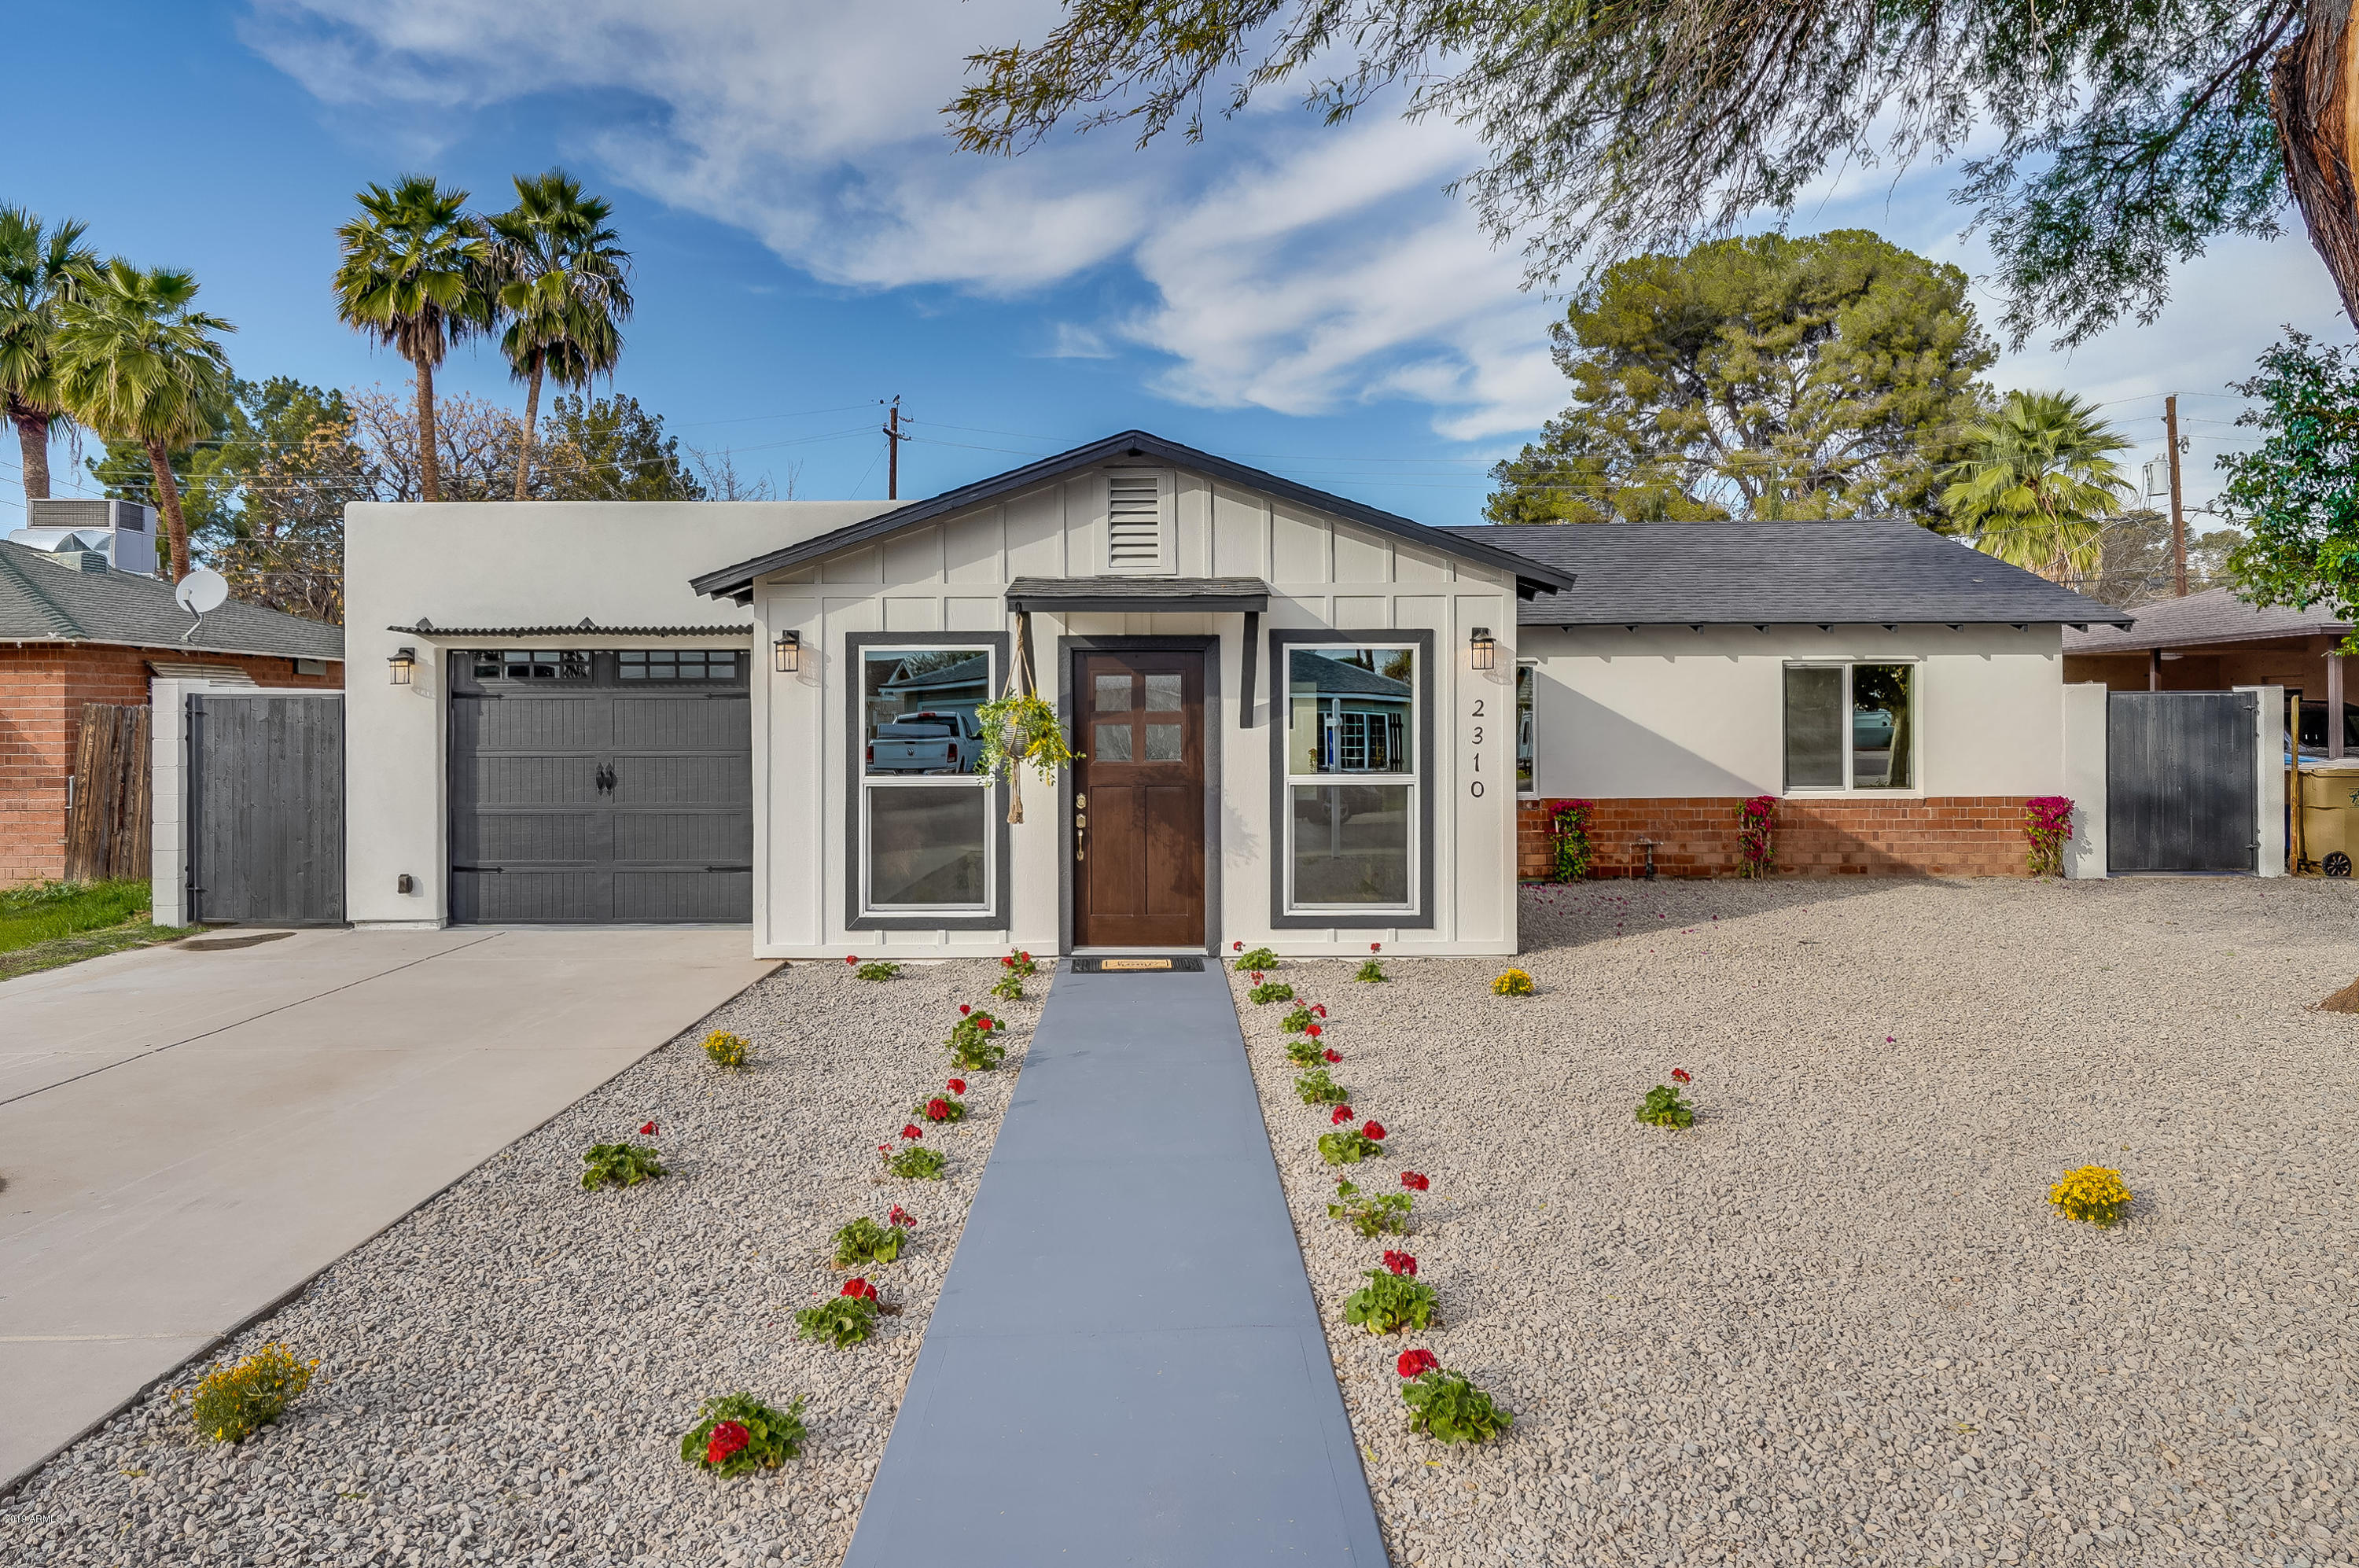 Photo of 2310 E WELDON Avenue, Phoenix, AZ 85016